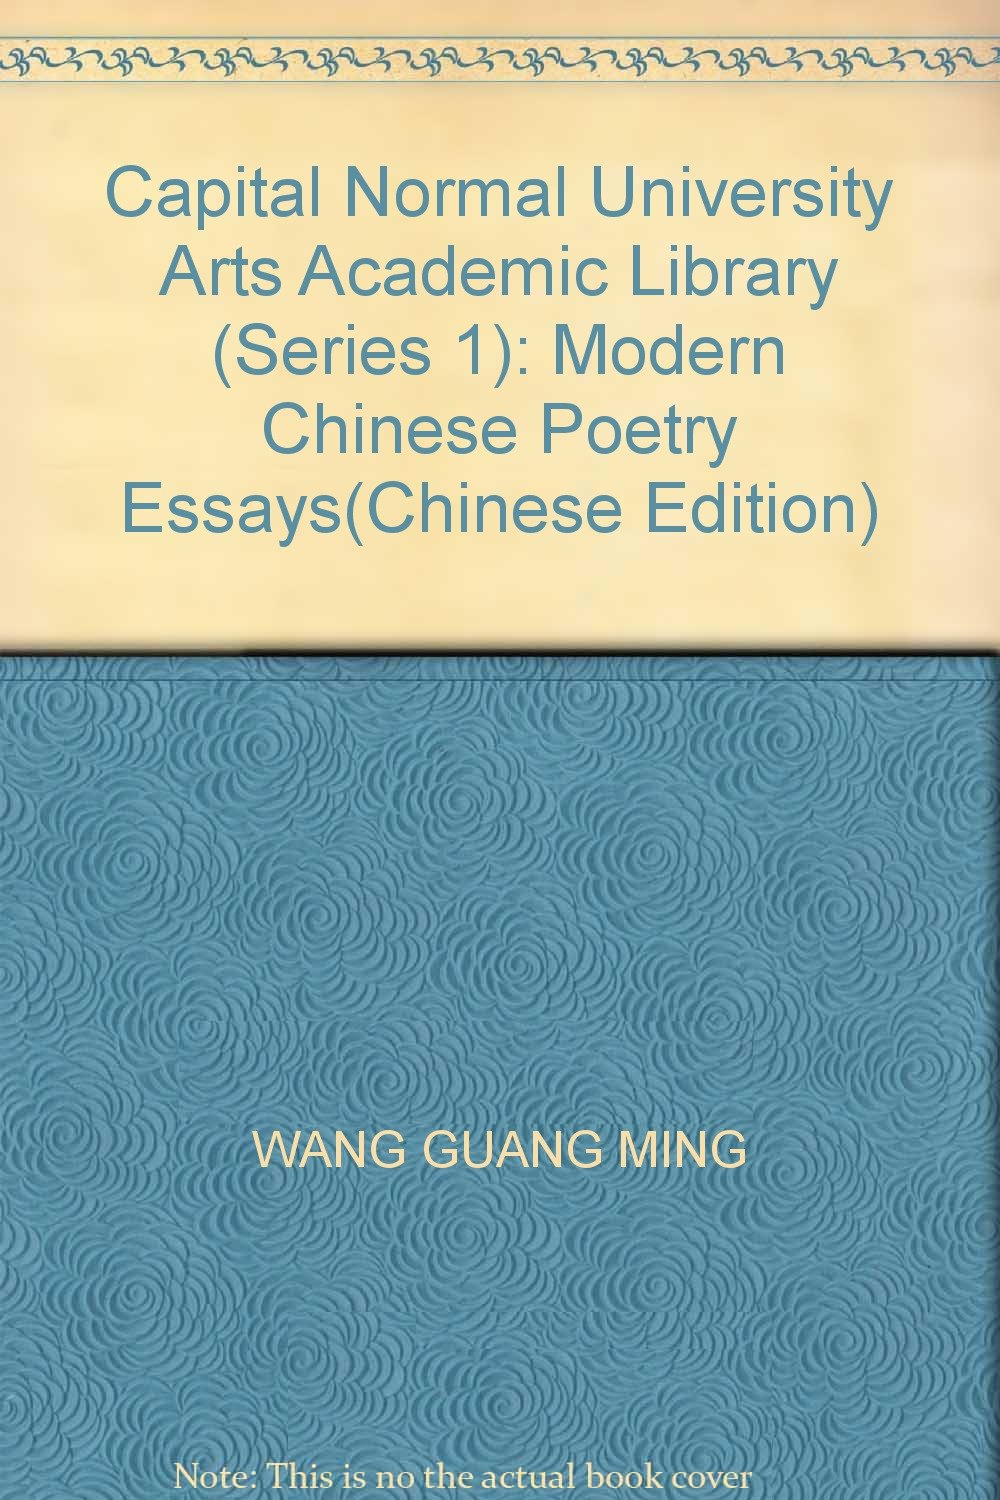 Download Capital Normal University Arts Academic Library (Series 1): Modern Chinese Poetry Essays(Chinese Edition) PDF